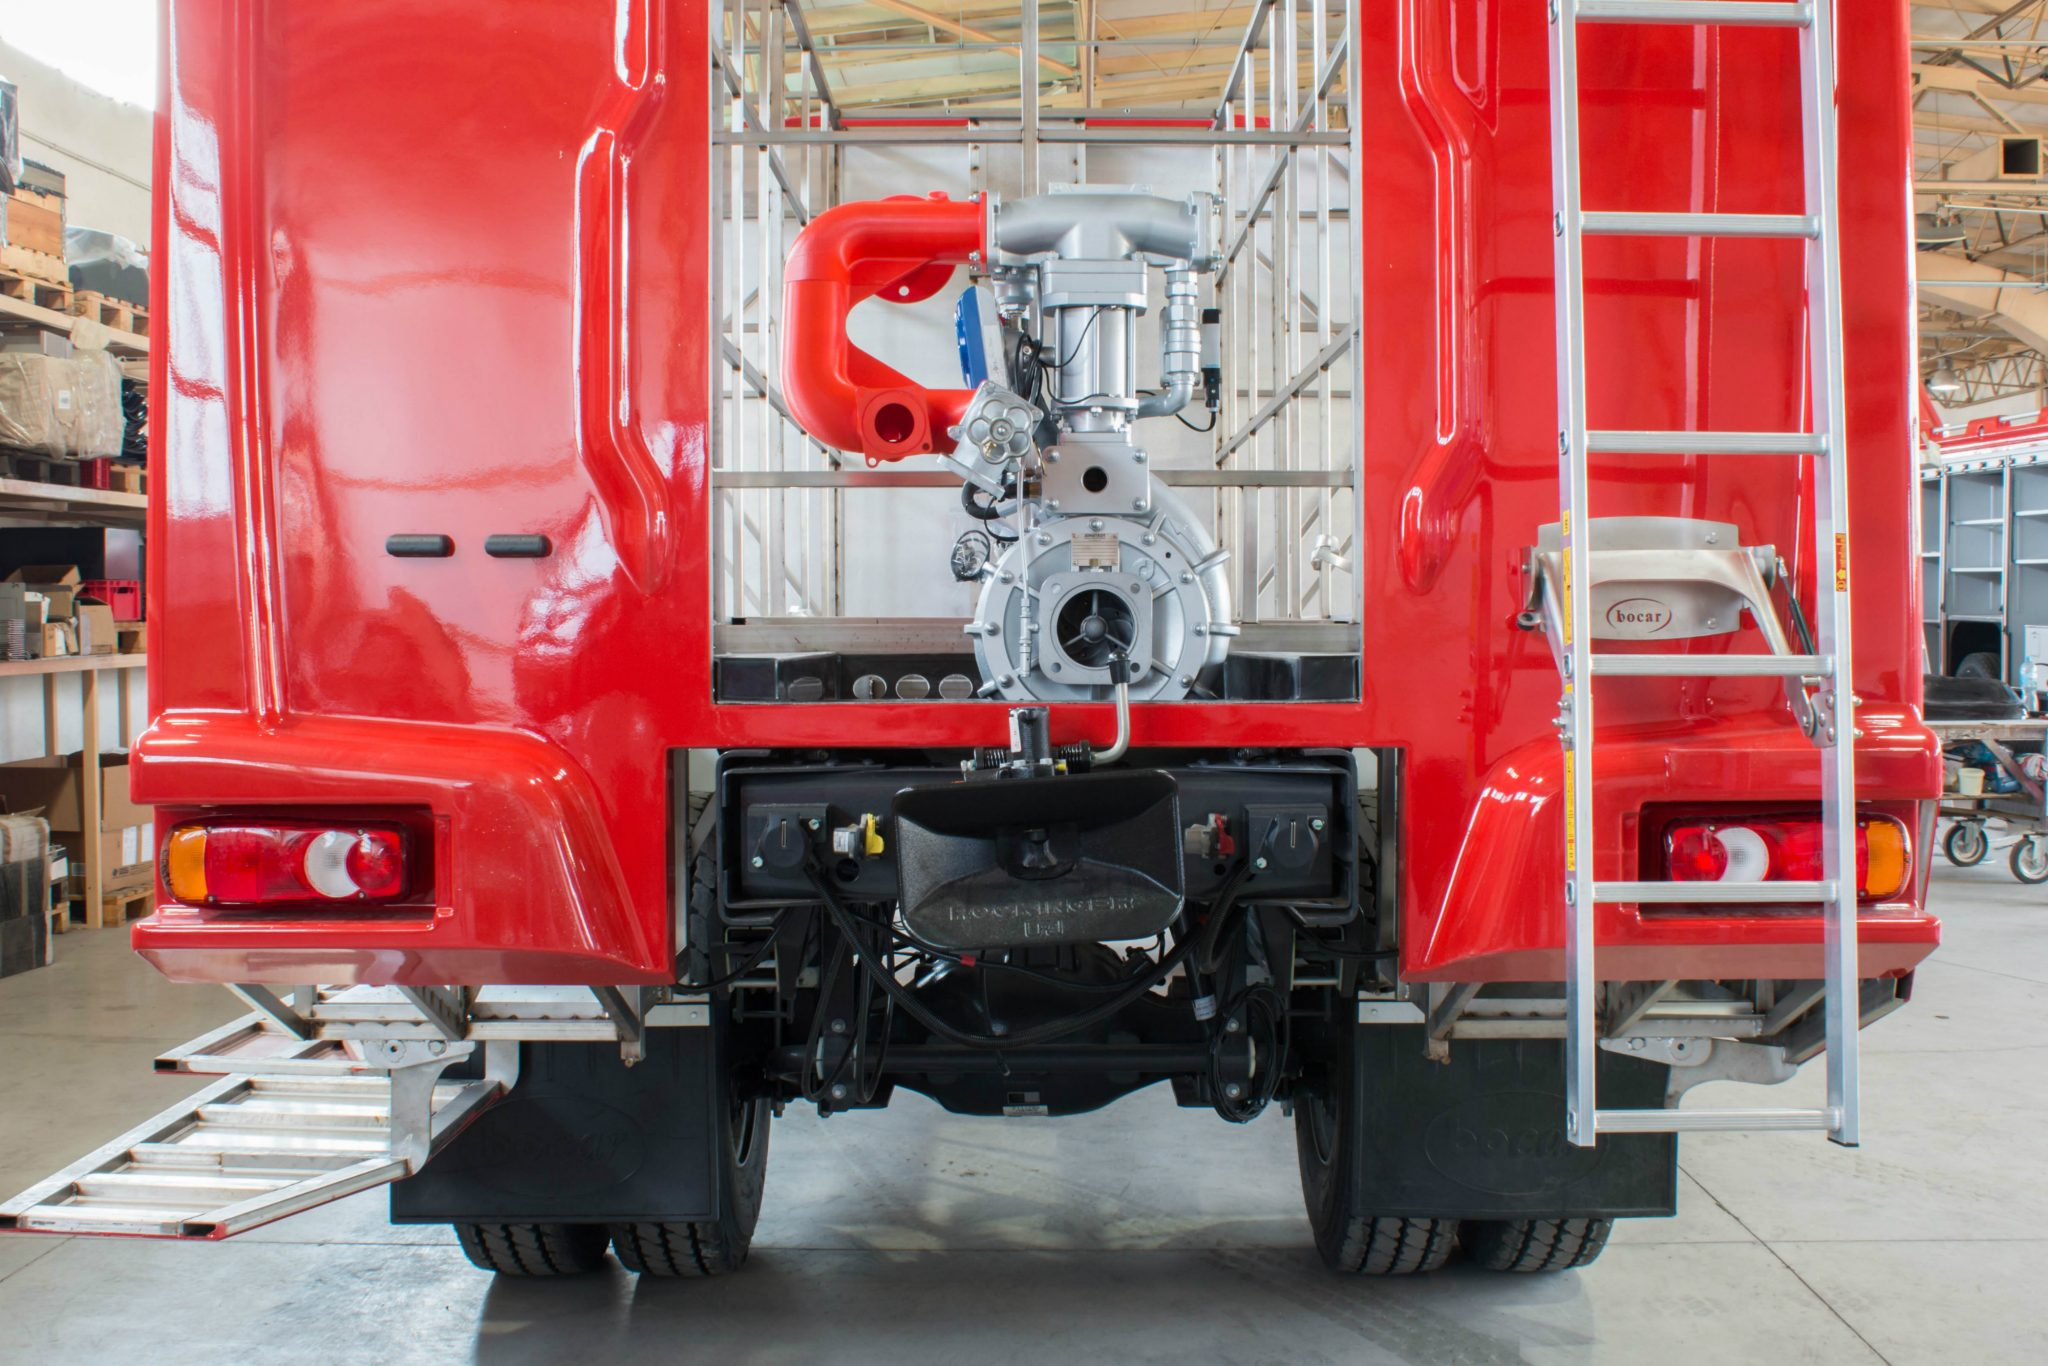 The red 3D printed vacuum manifold installed on a Bocar fire truck. Photo via 3DGence